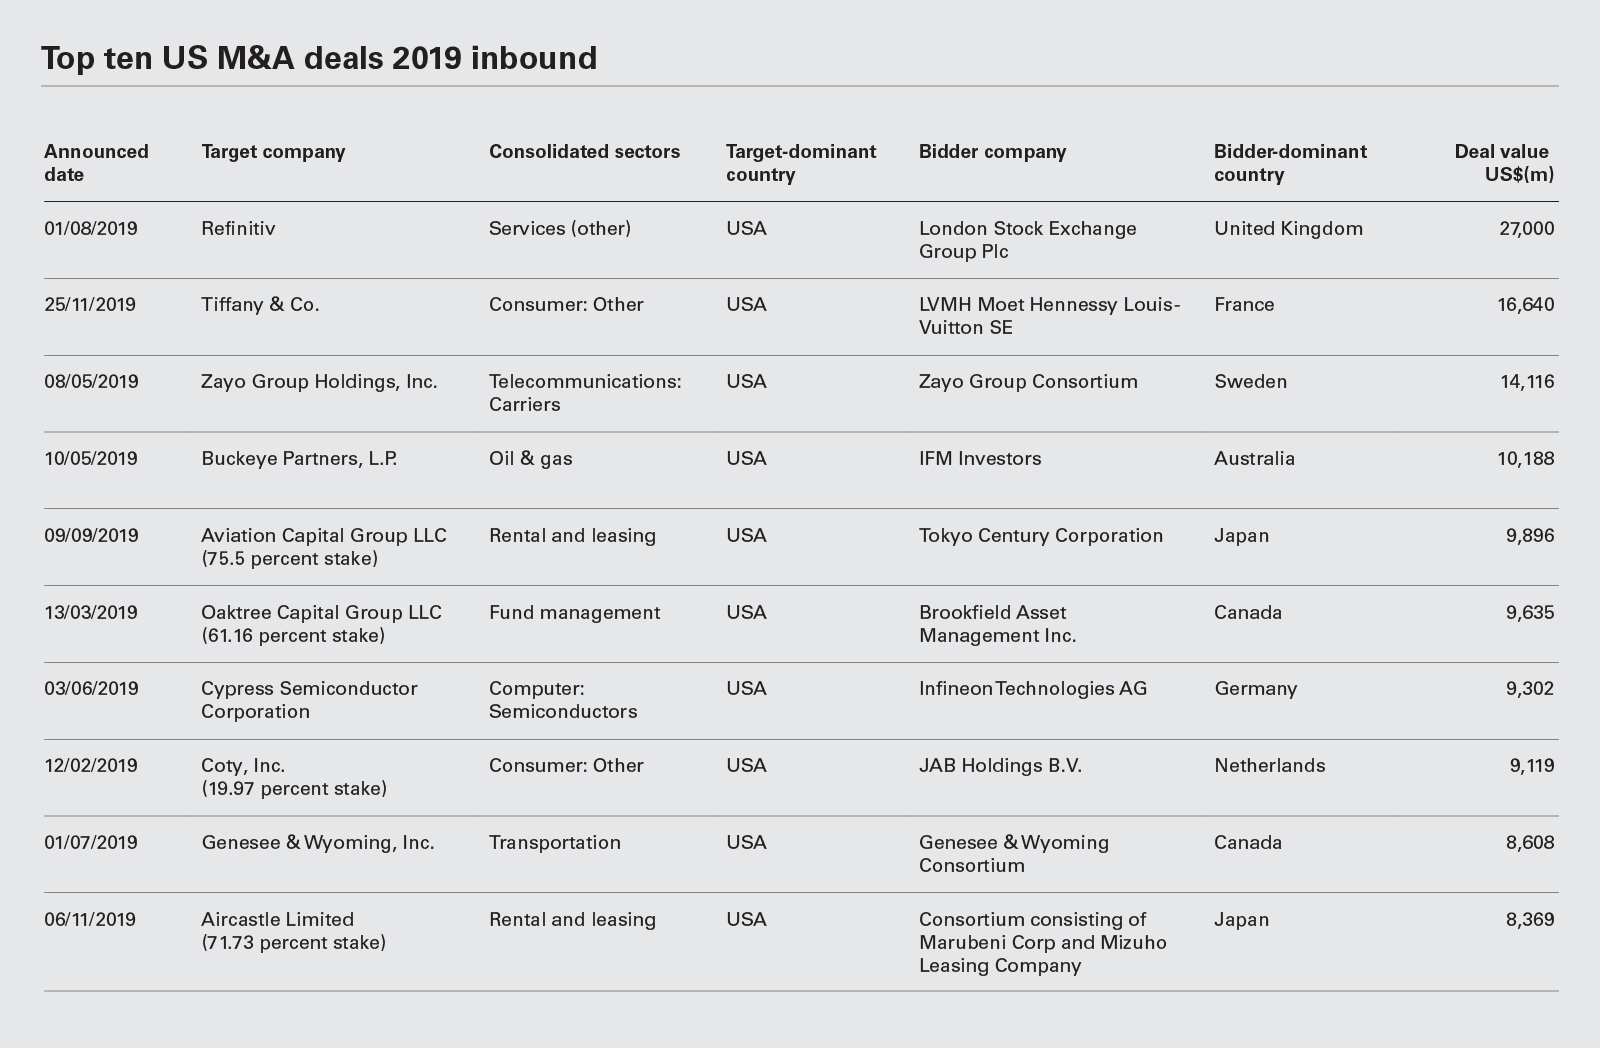 Top ten US M&A deals 2019 inbound